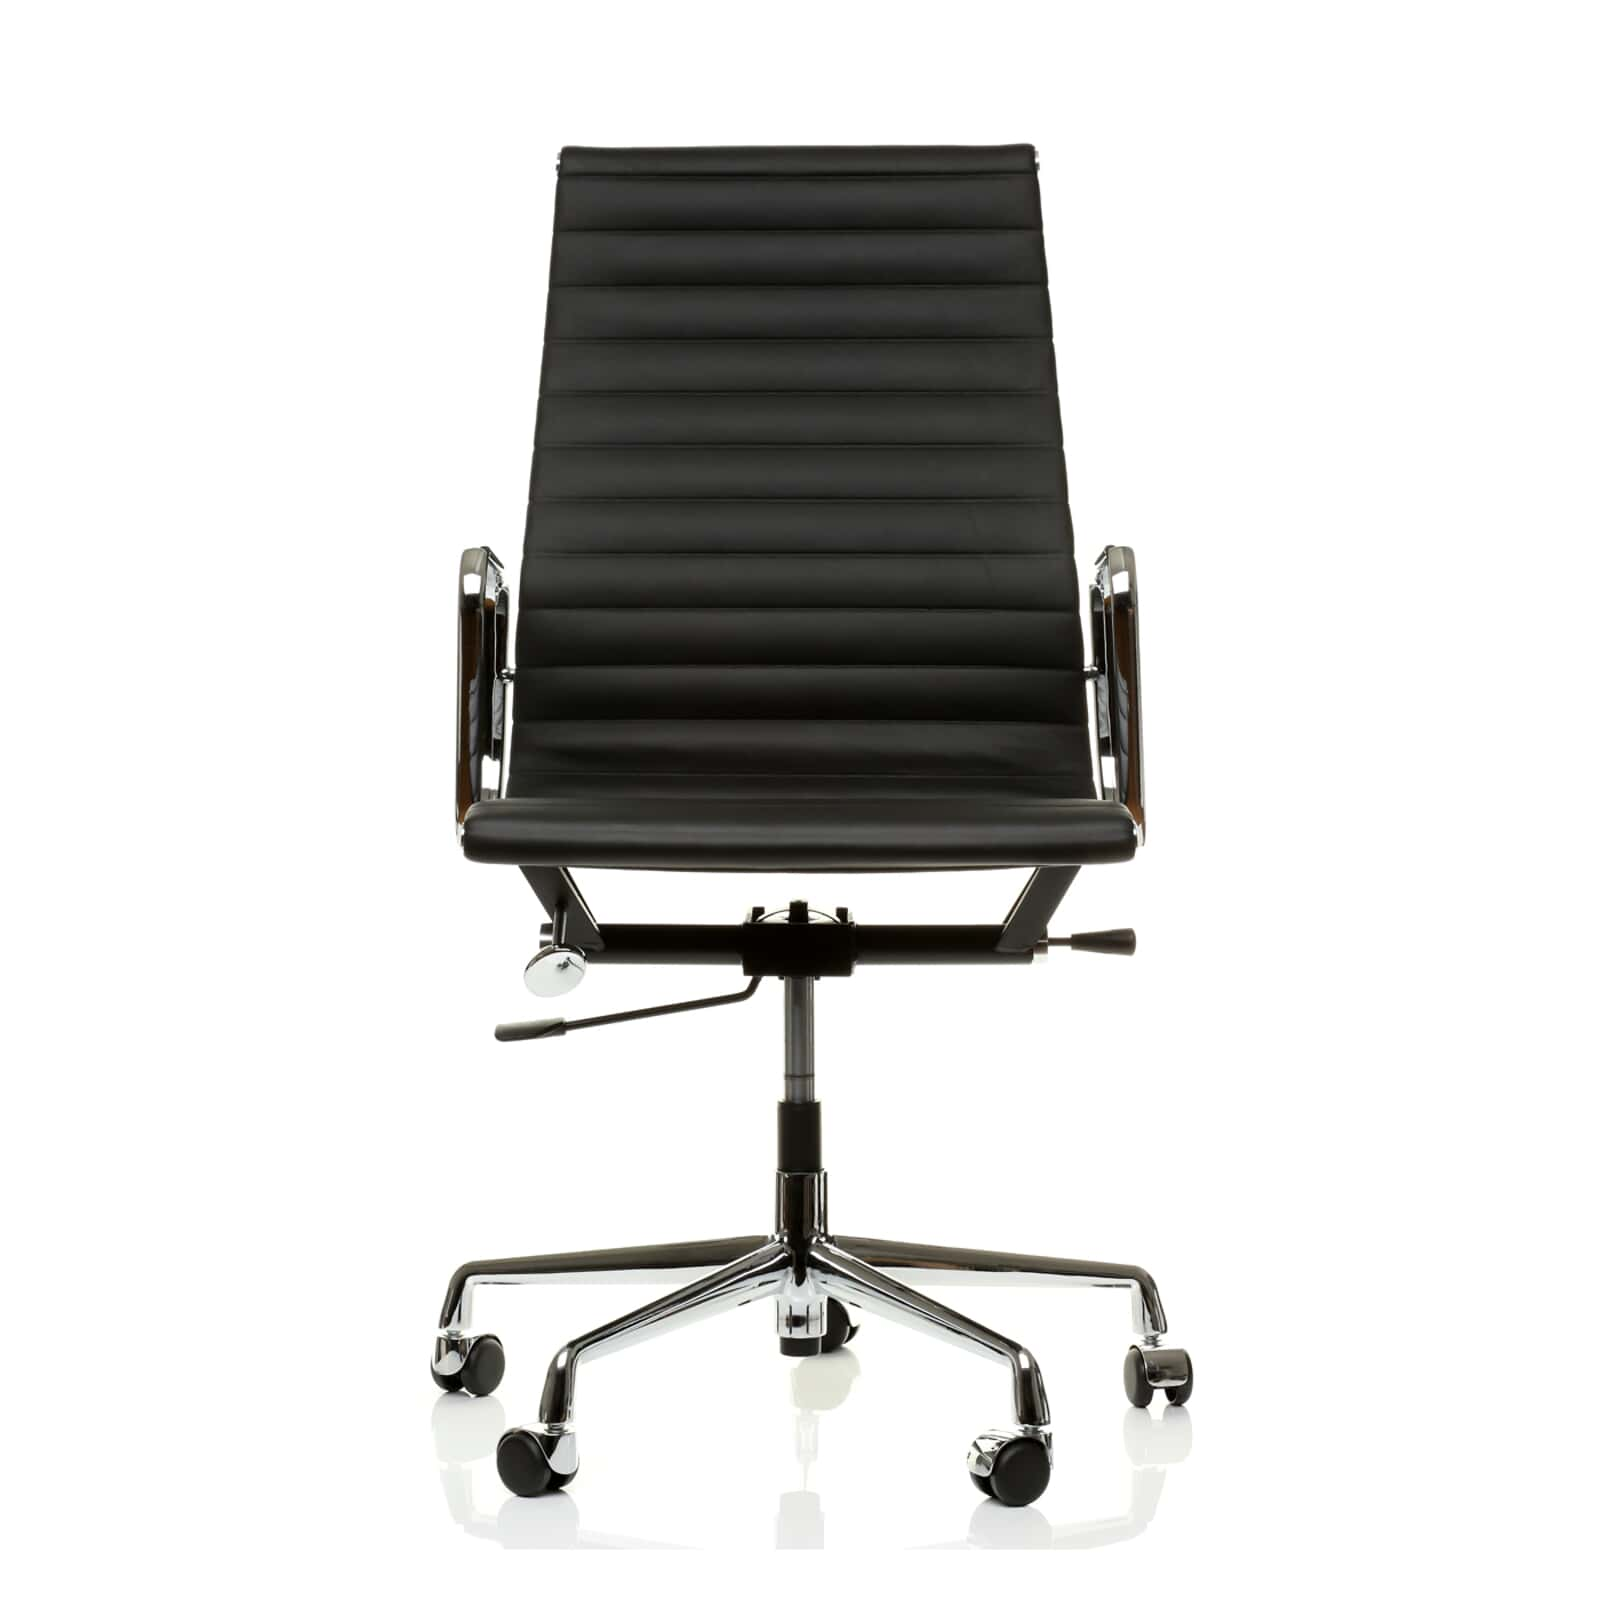 Peachy Charles E Style Office Aluminium Group Chair Ea 119 Style Ncnpc Chair Design For Home Ncnpcorg